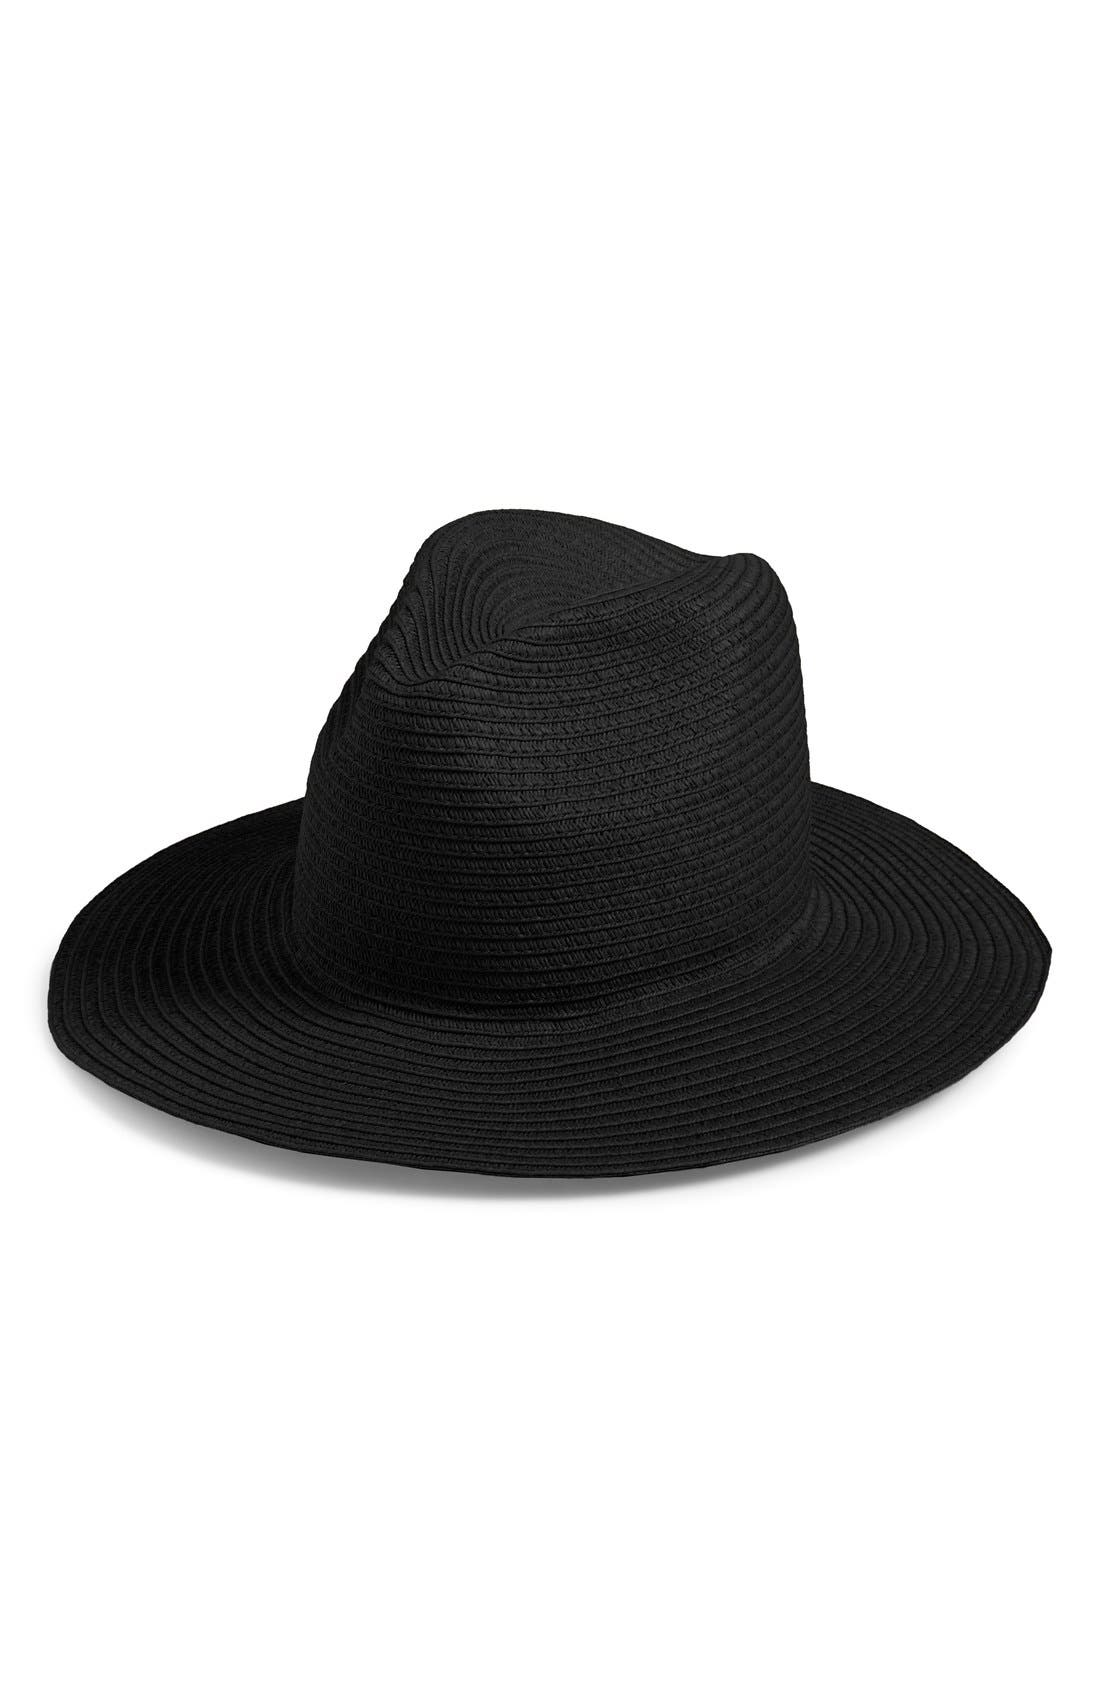 Alternate Image 1 Selected - Madewell Pieced Straw Hat